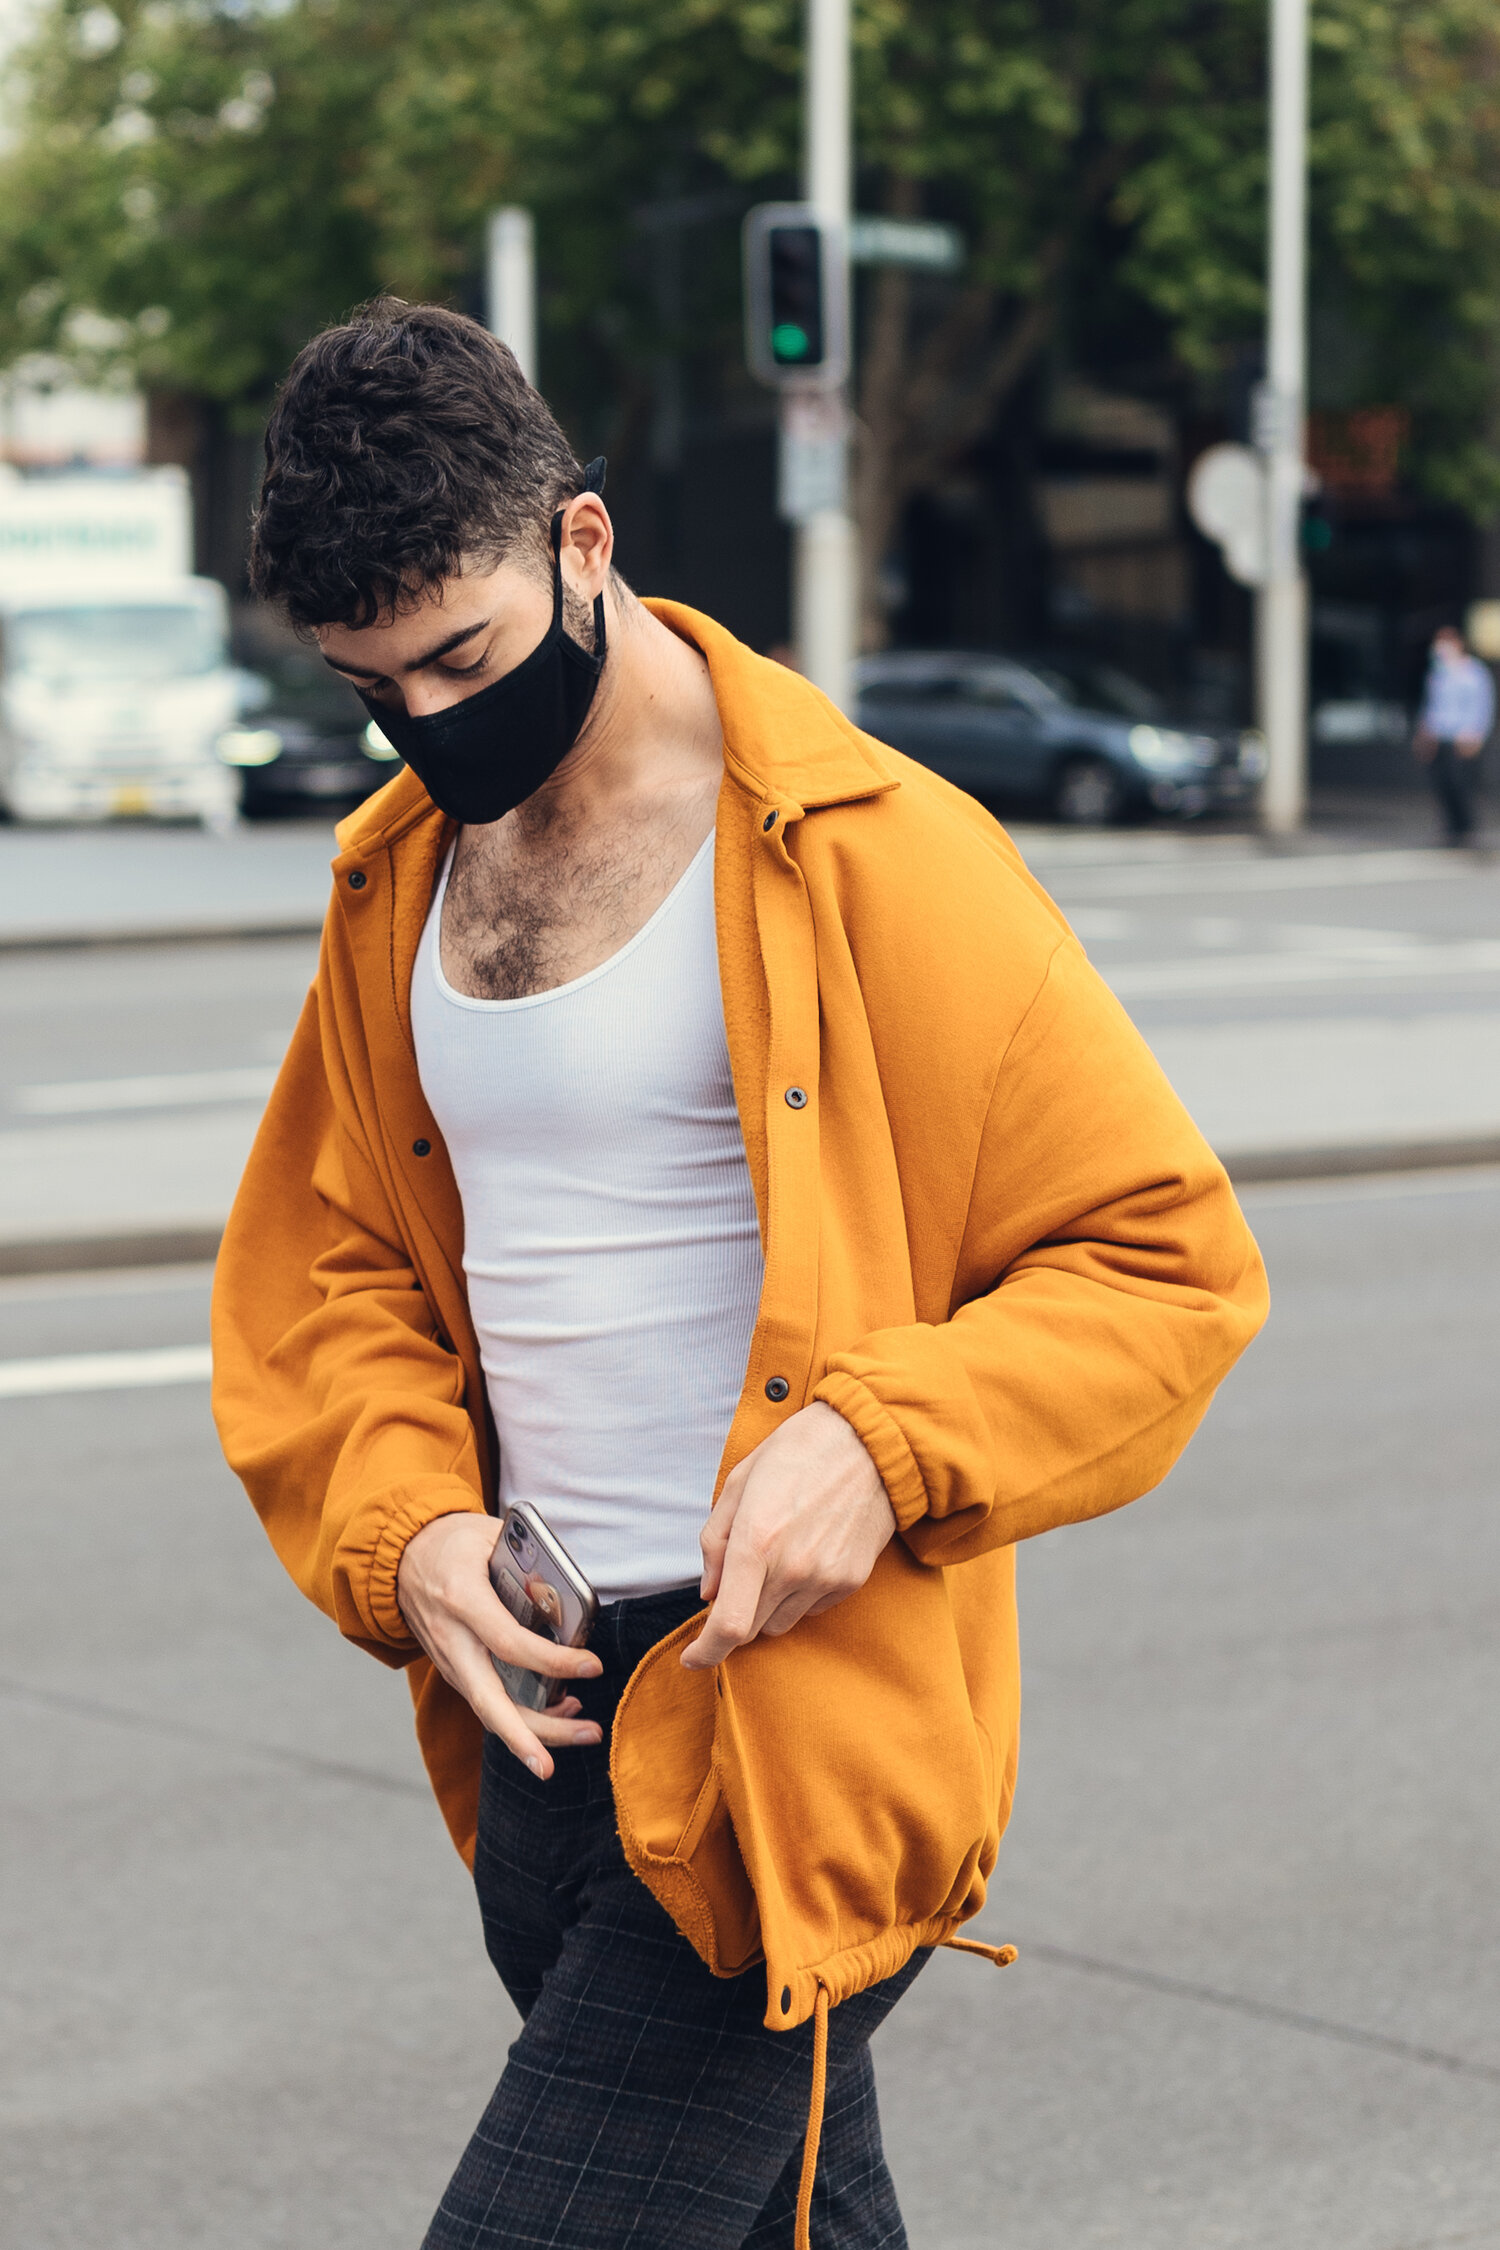 Men In This Town — Canary — Men's Street Style